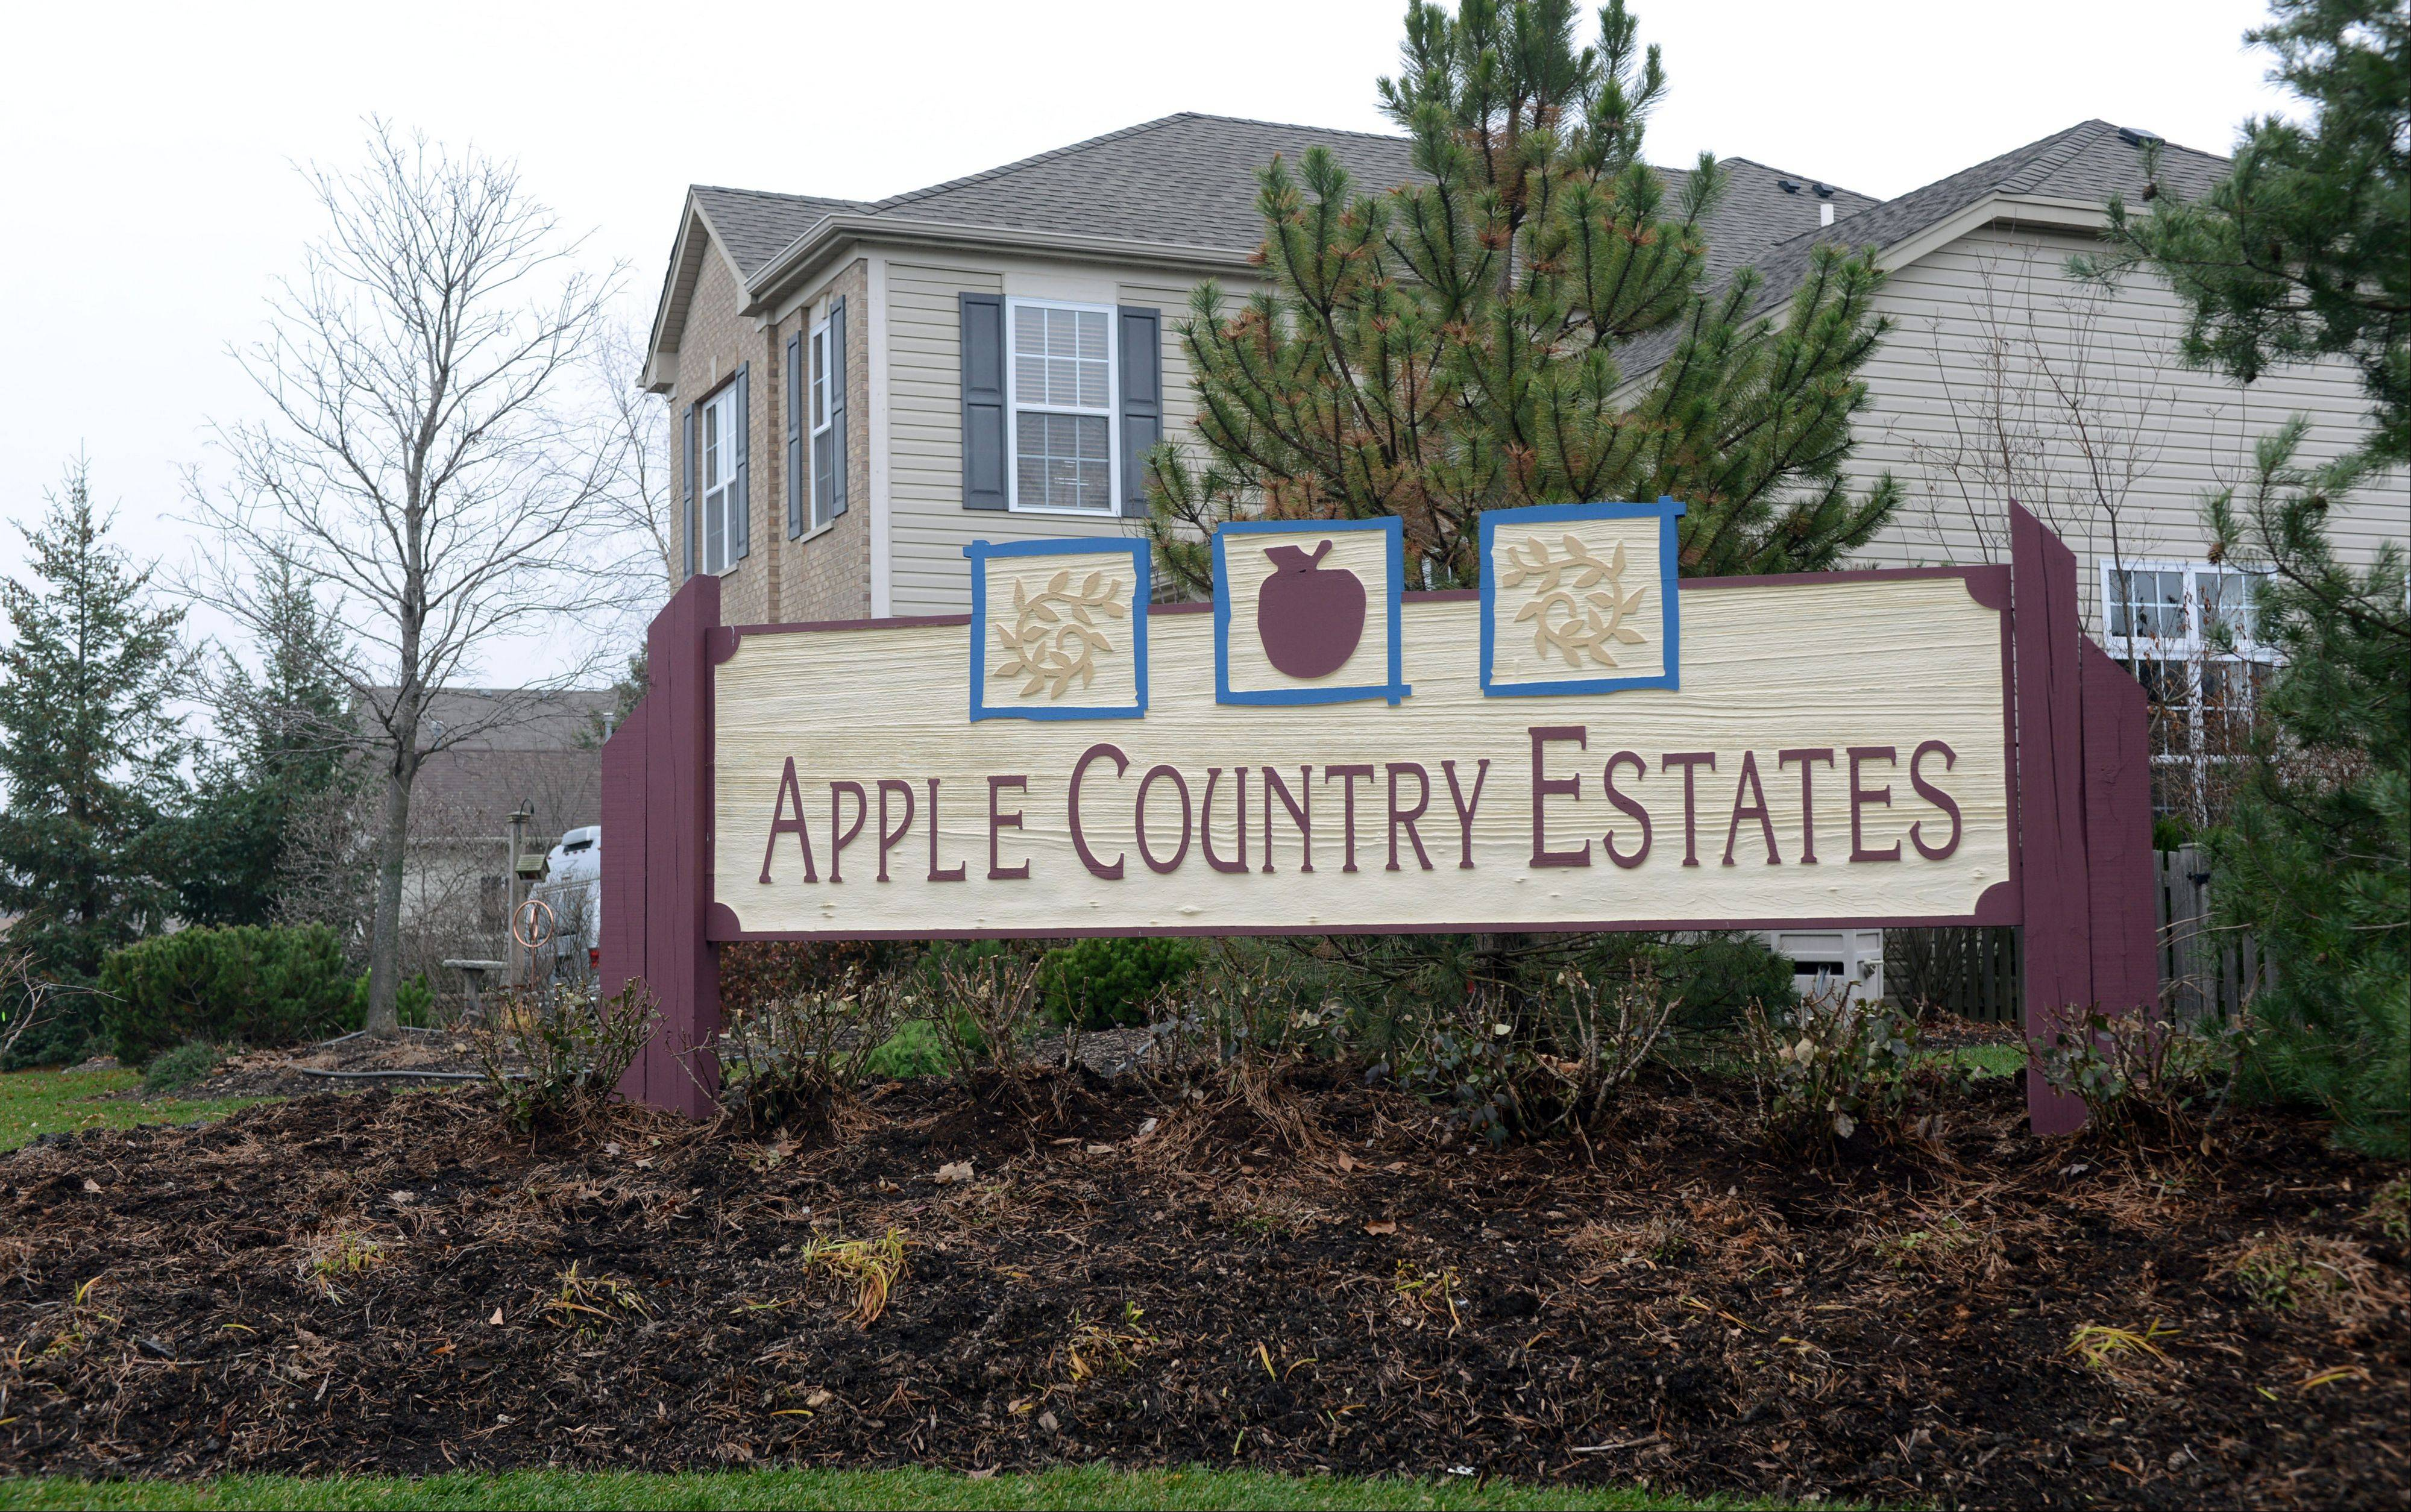 Apple Country Estates is a neighborhood of 82 homes just off Gossell Road inn Wauconda.